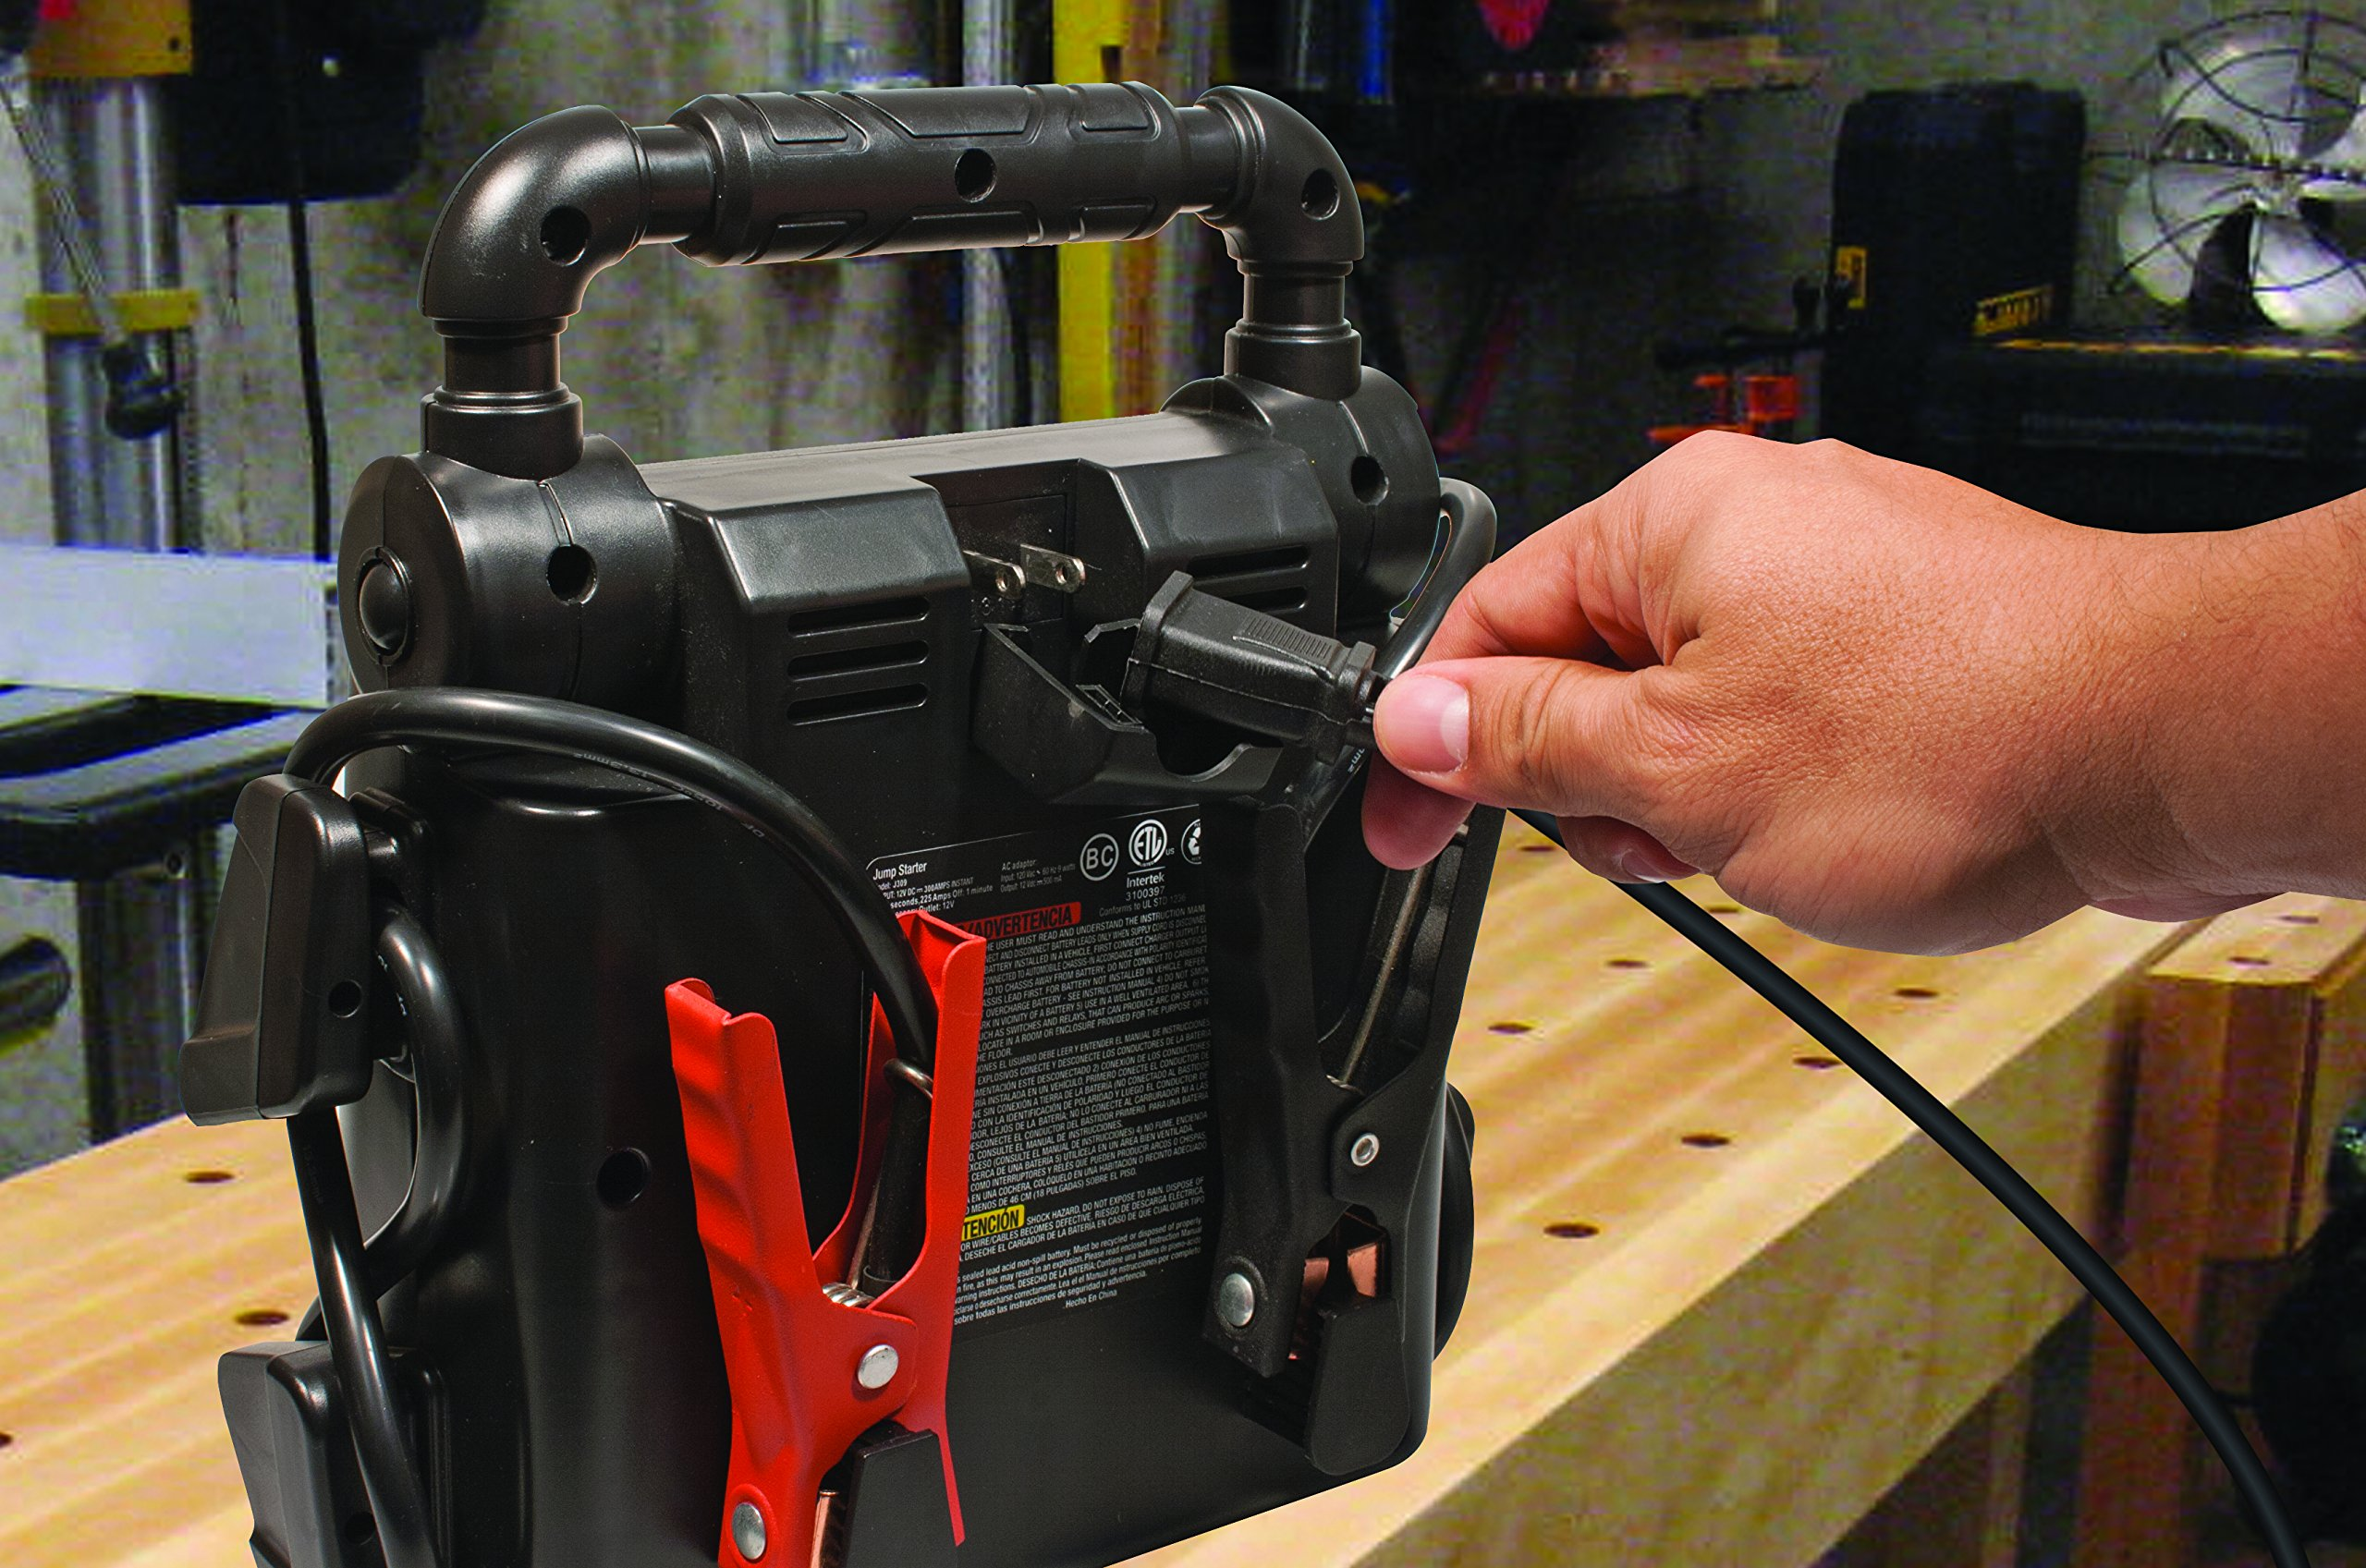 STANLEY J5C09 Power Station Jump Starter: 1000 Peak/500 Instant Amps, 120 PSI Air Compressor, Battery Clamps by STANLEY (Image #6)